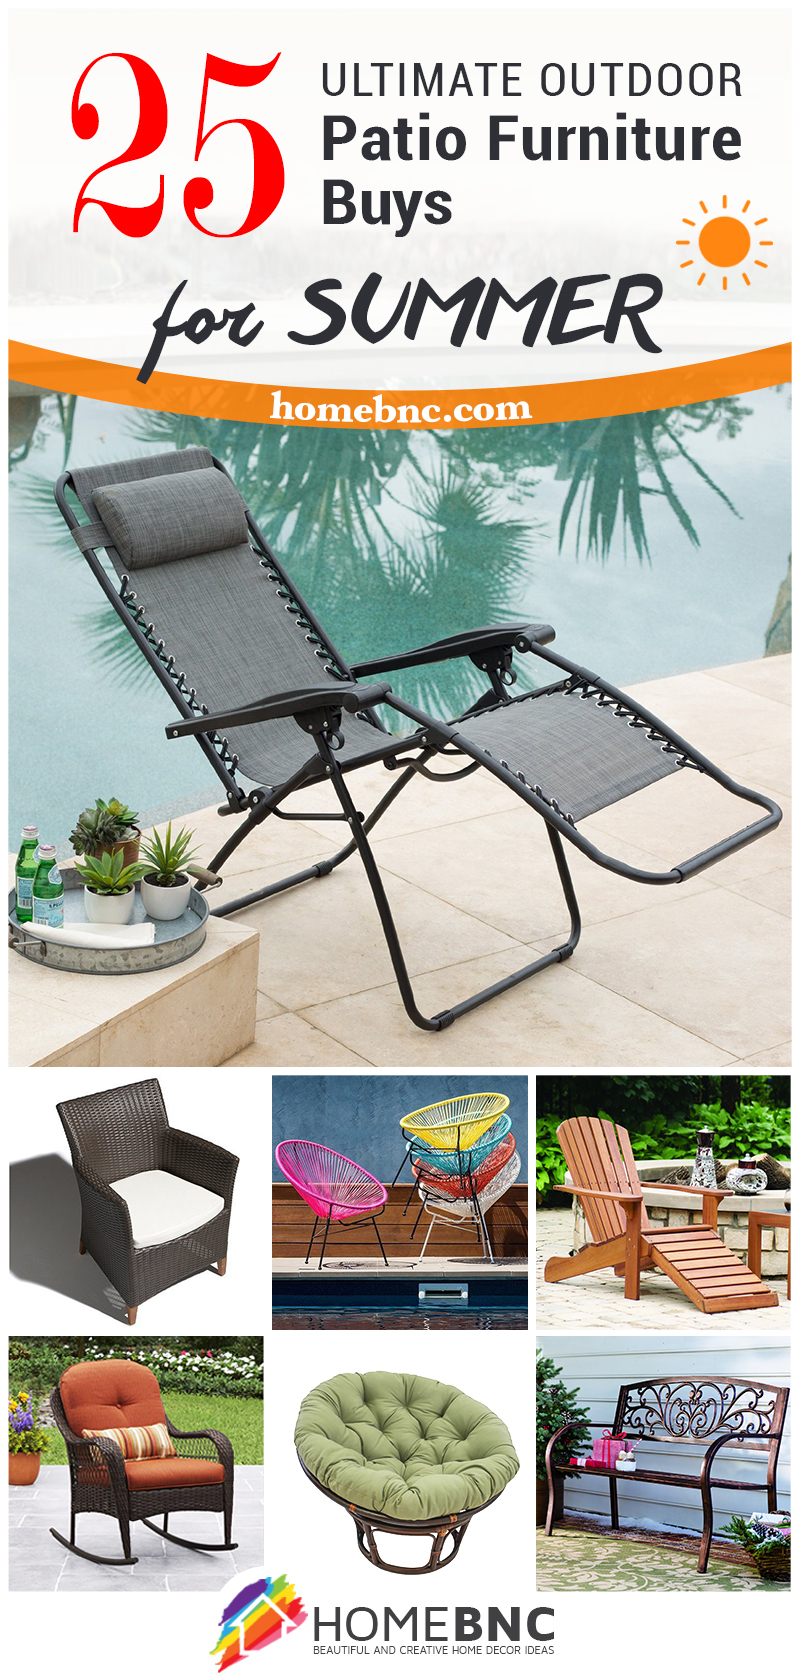 Best Patio Chairs for Summer